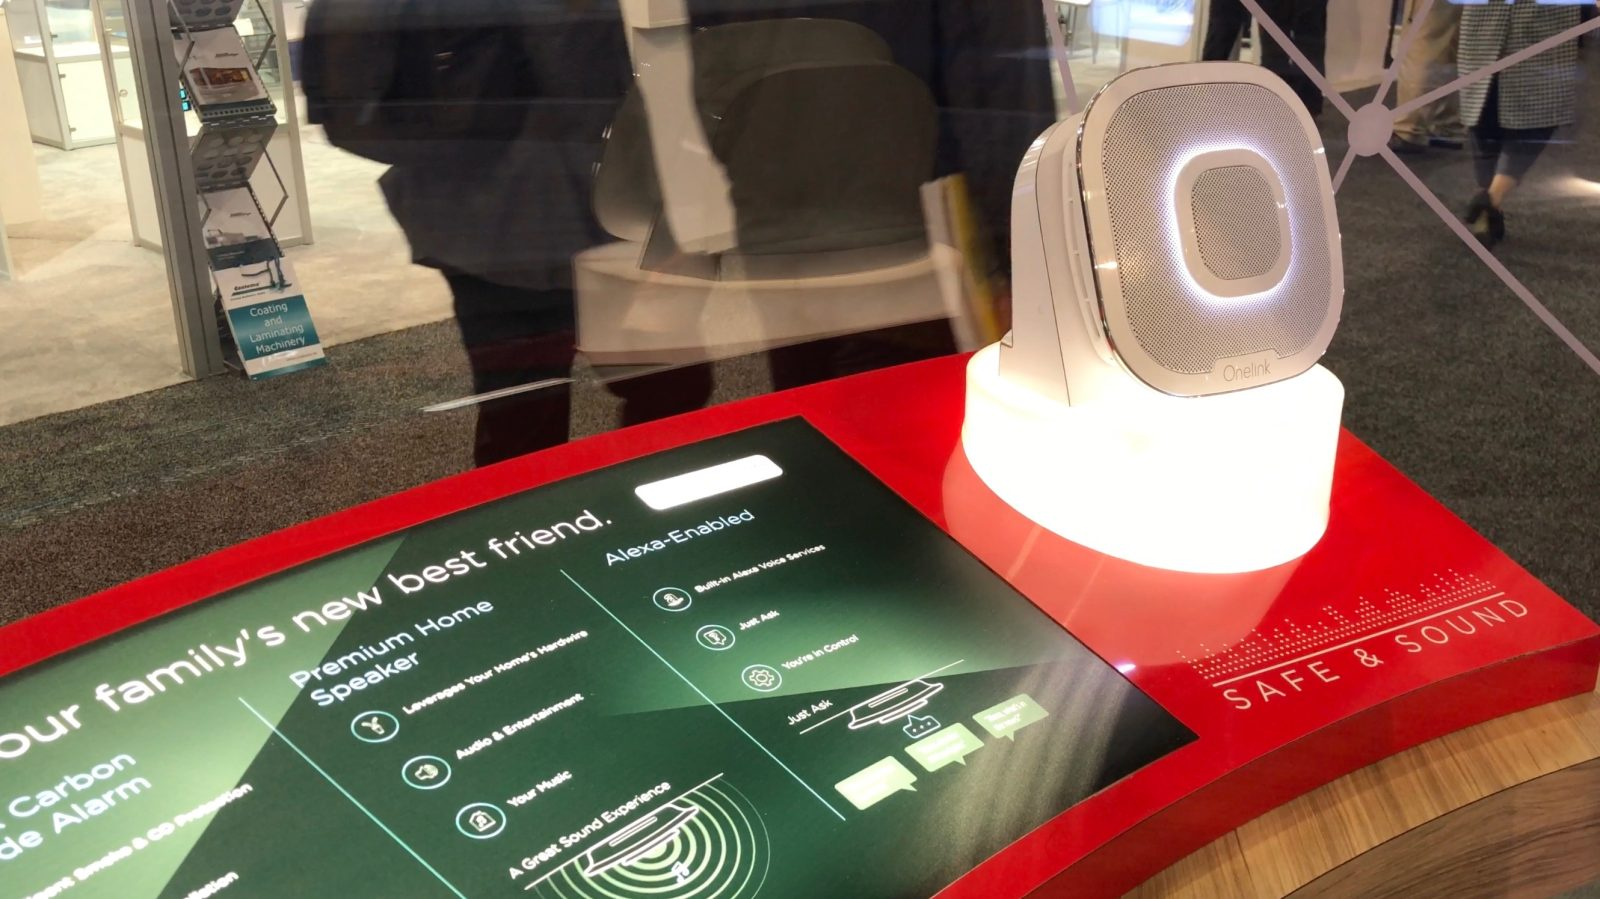 Hands-on with First Alert's Safe & Sound HomeKit smoke alarm